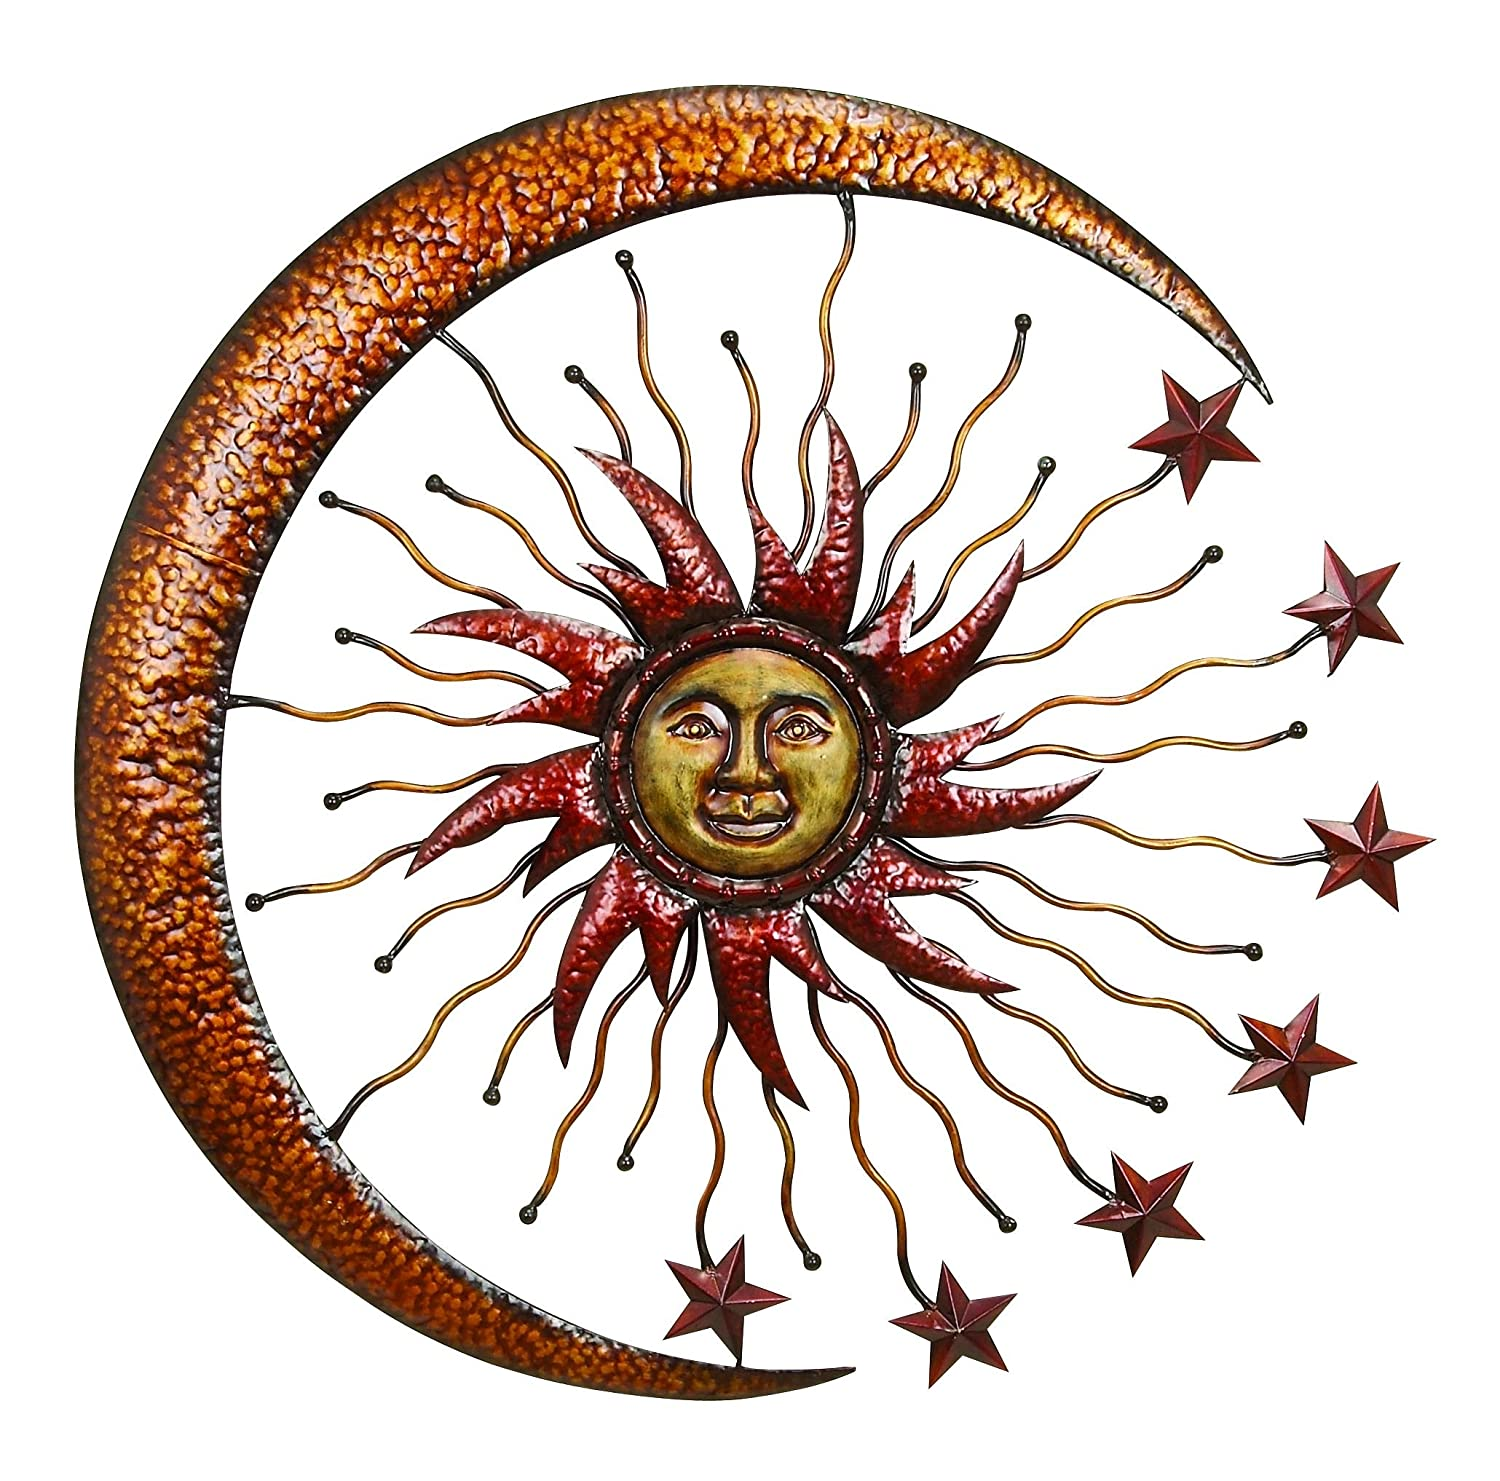 "Deco 79 Eclectic Celestial-Themed Metal Wall Decor 36""Diameter Copper and Gold Finishes"